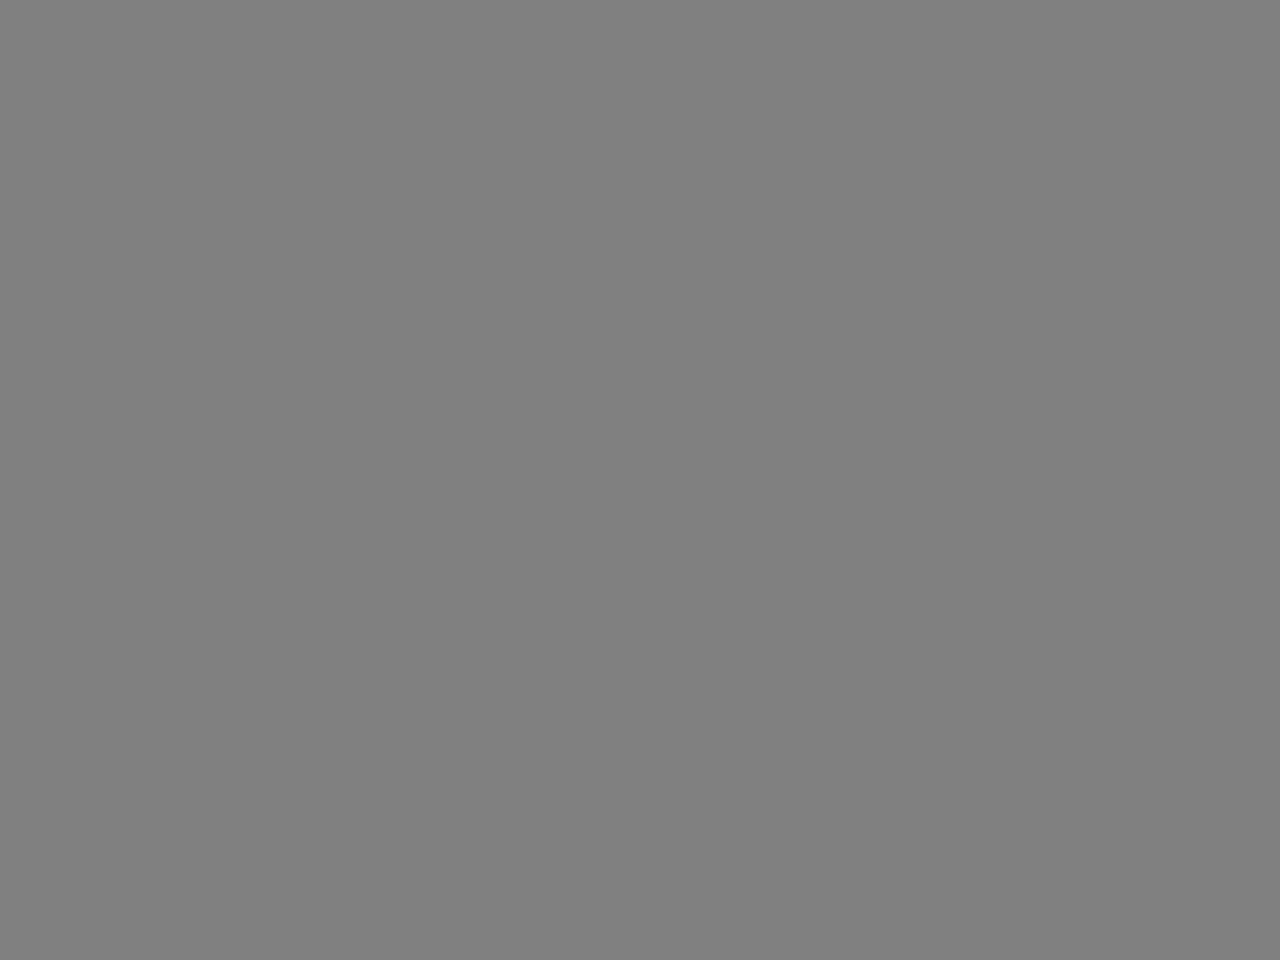 1280x960 Gray Solid Color Background